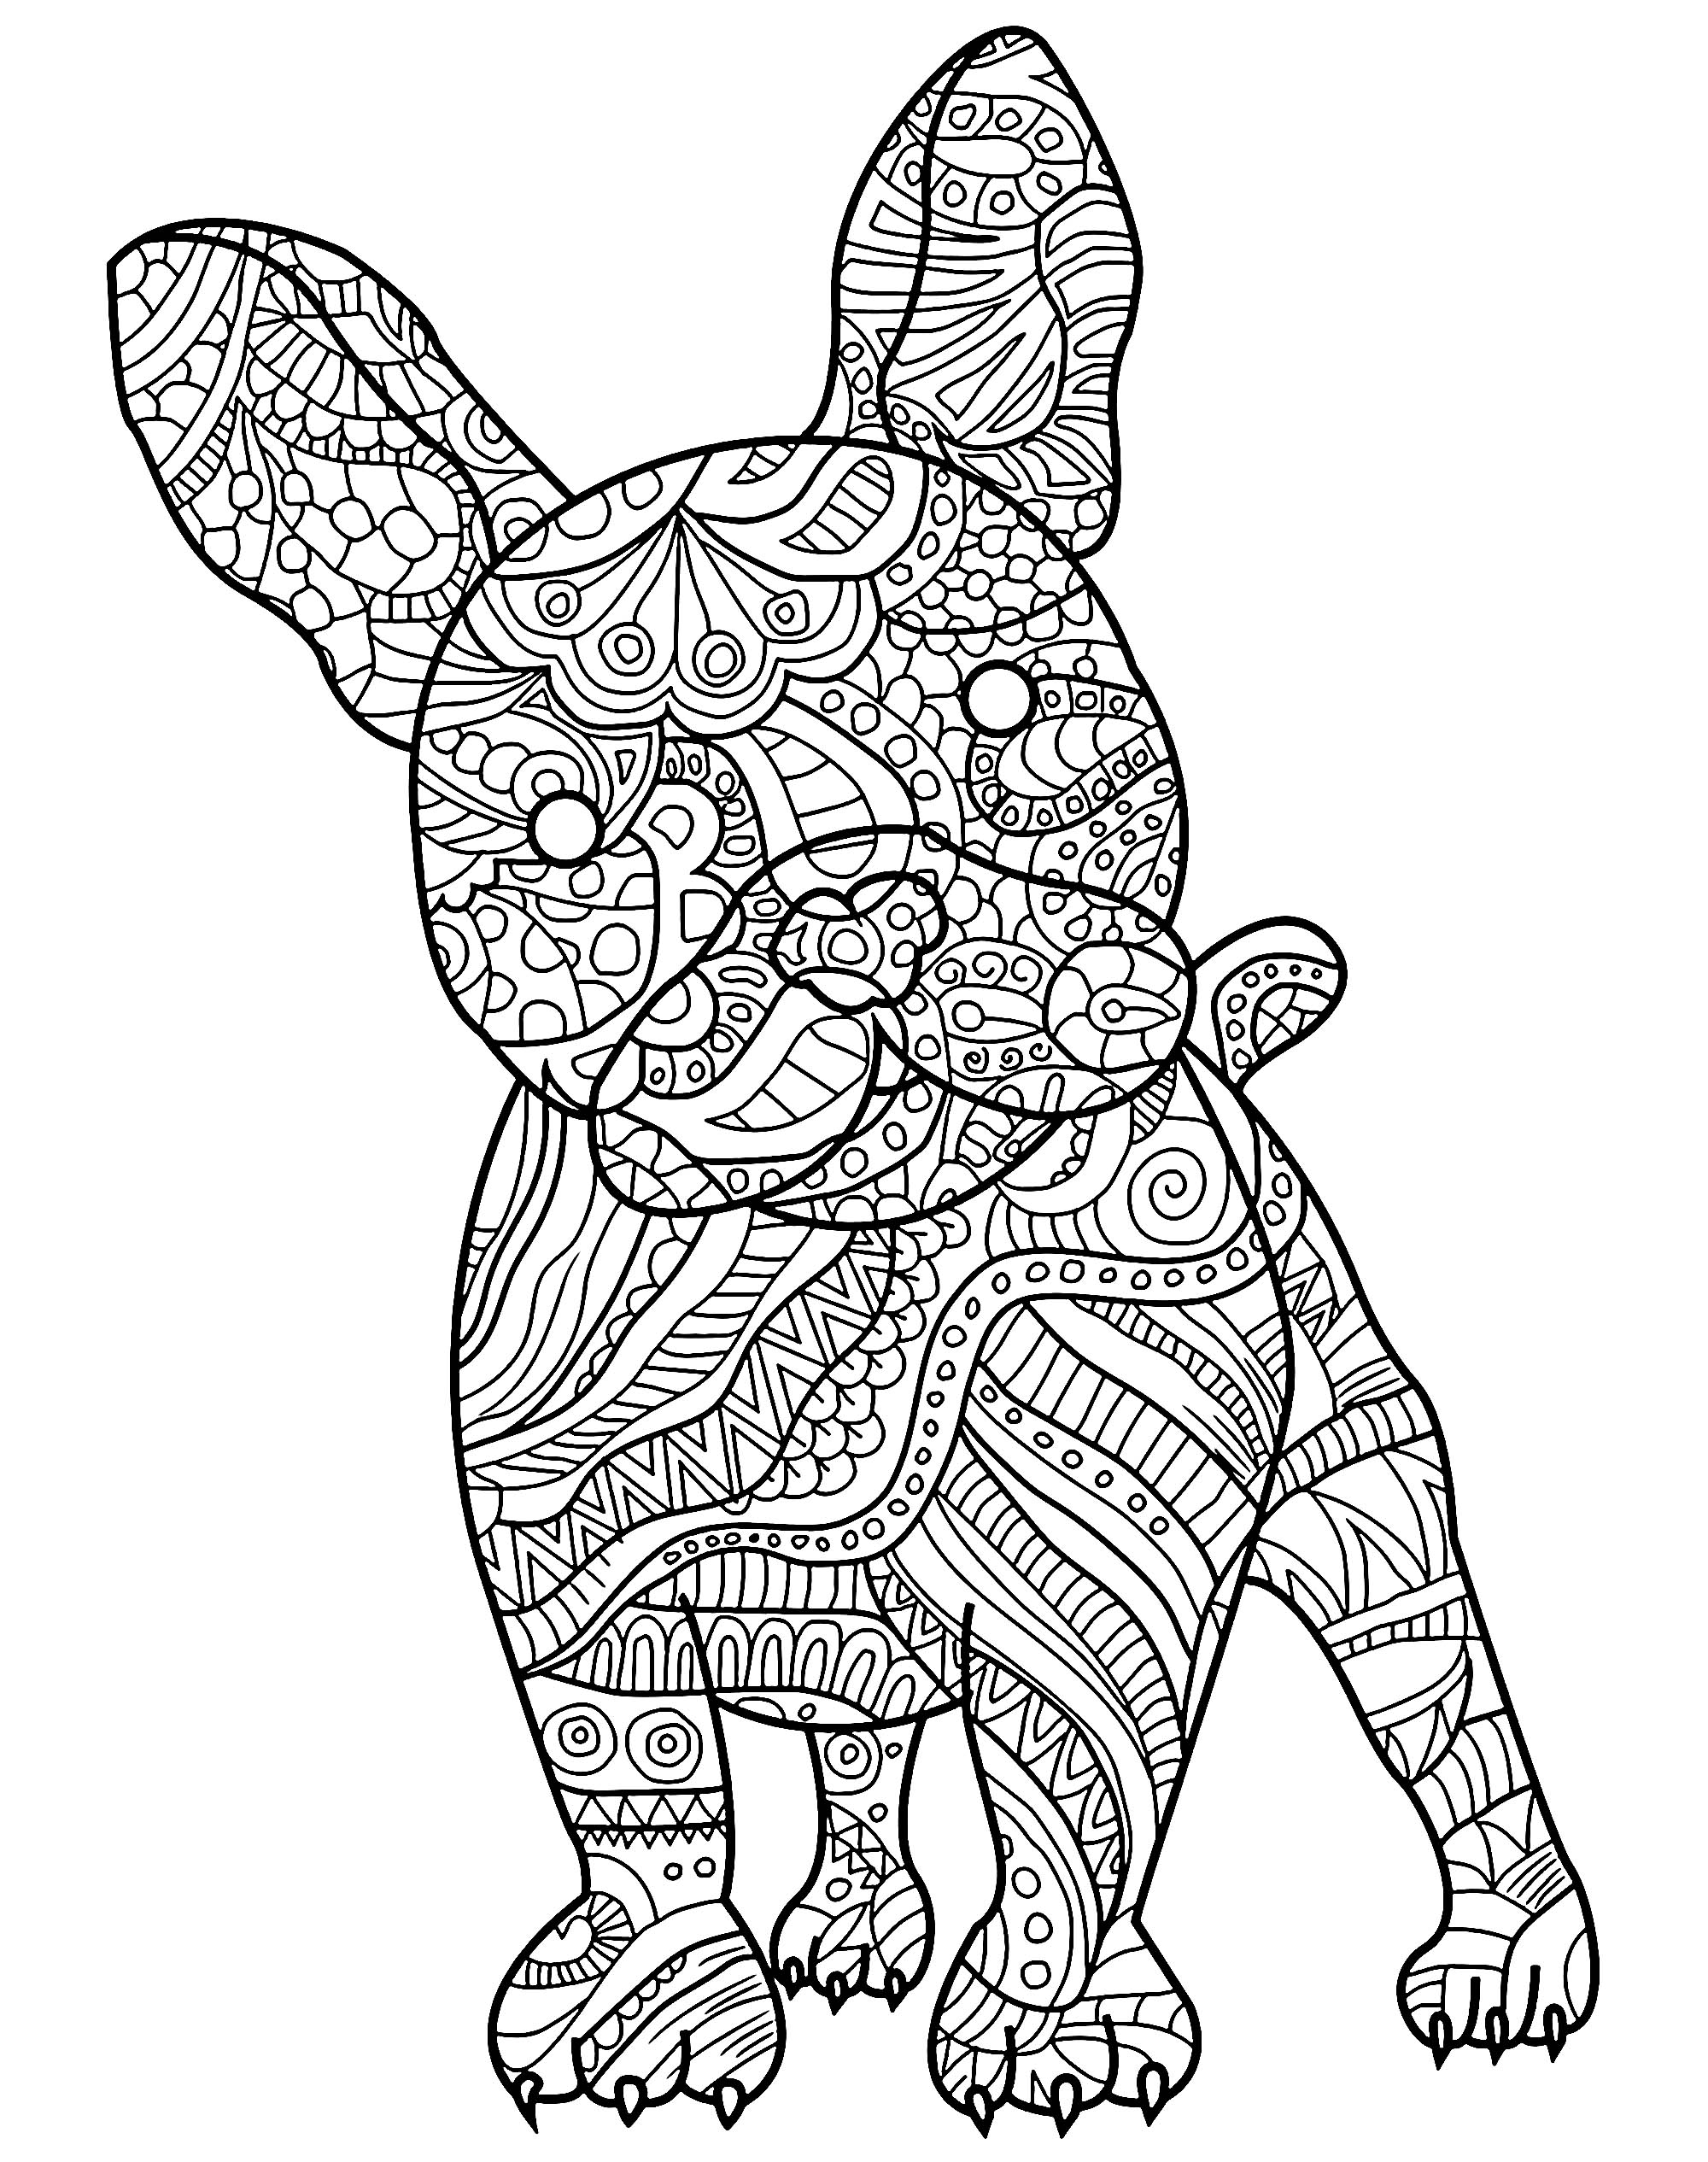 coloring in pages of dogs | Dogs to download for free - Dogs Kids Coloring Pages